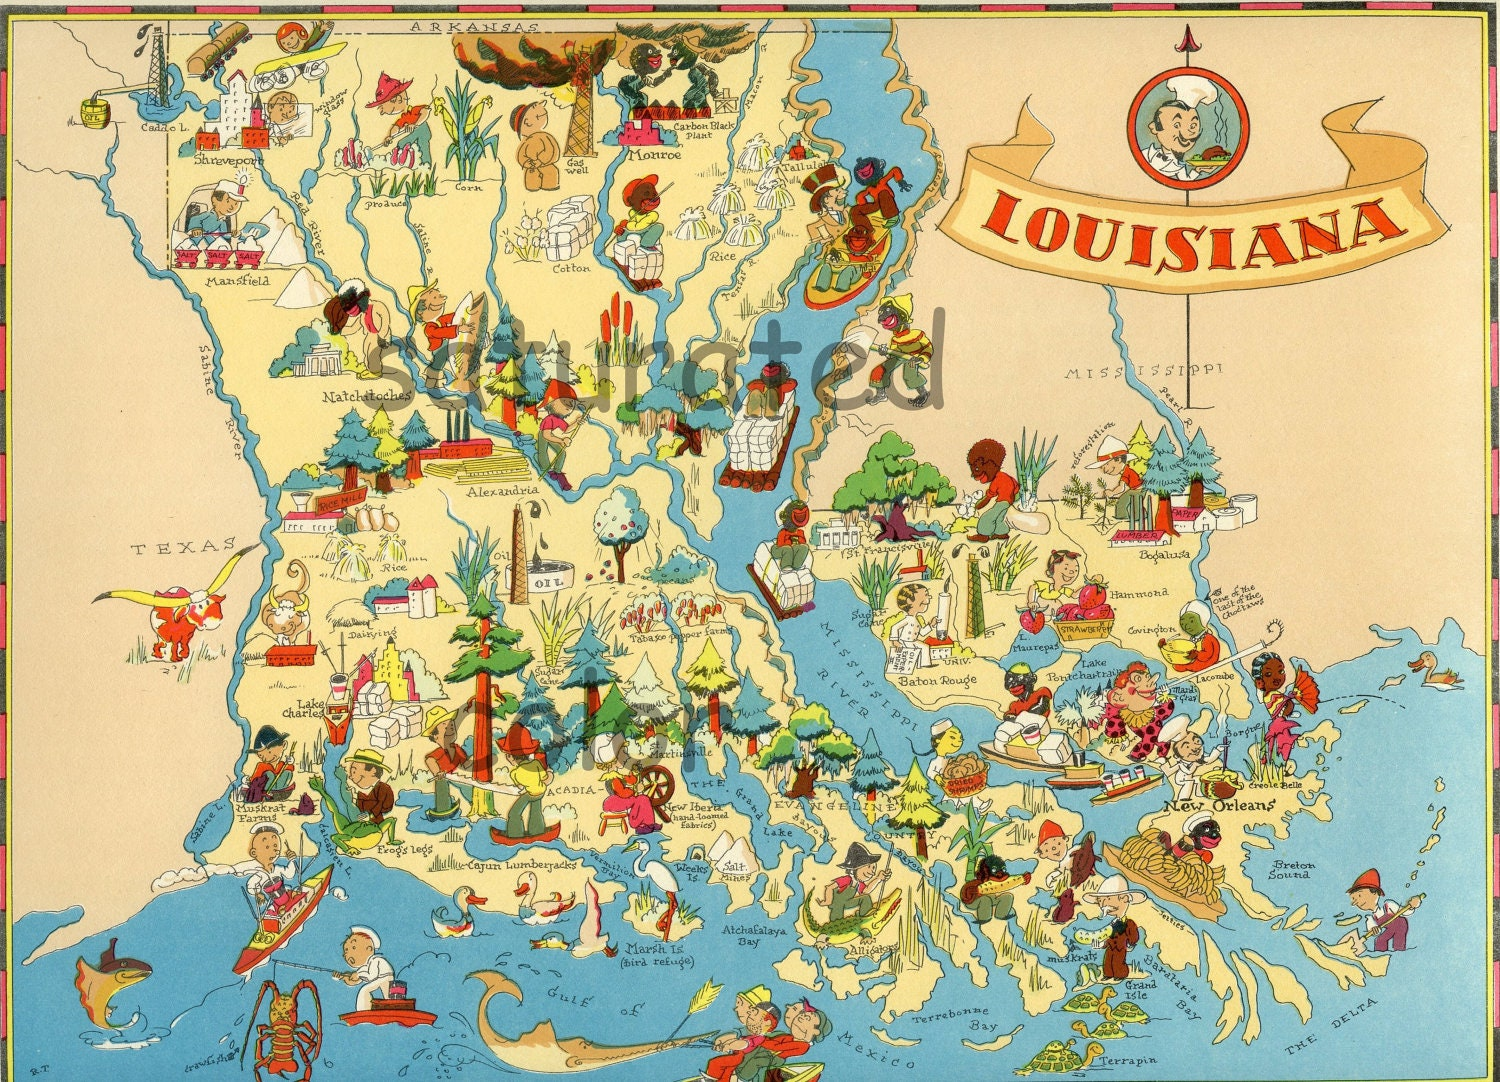 louisiana maps with Louisiana Map Original Vintage 1930s on Oklahoma City Location On The Us Map in addition 9507682 furthermore Location in addition Los Angeles Geology Maps as well 1365 Zoo Map.